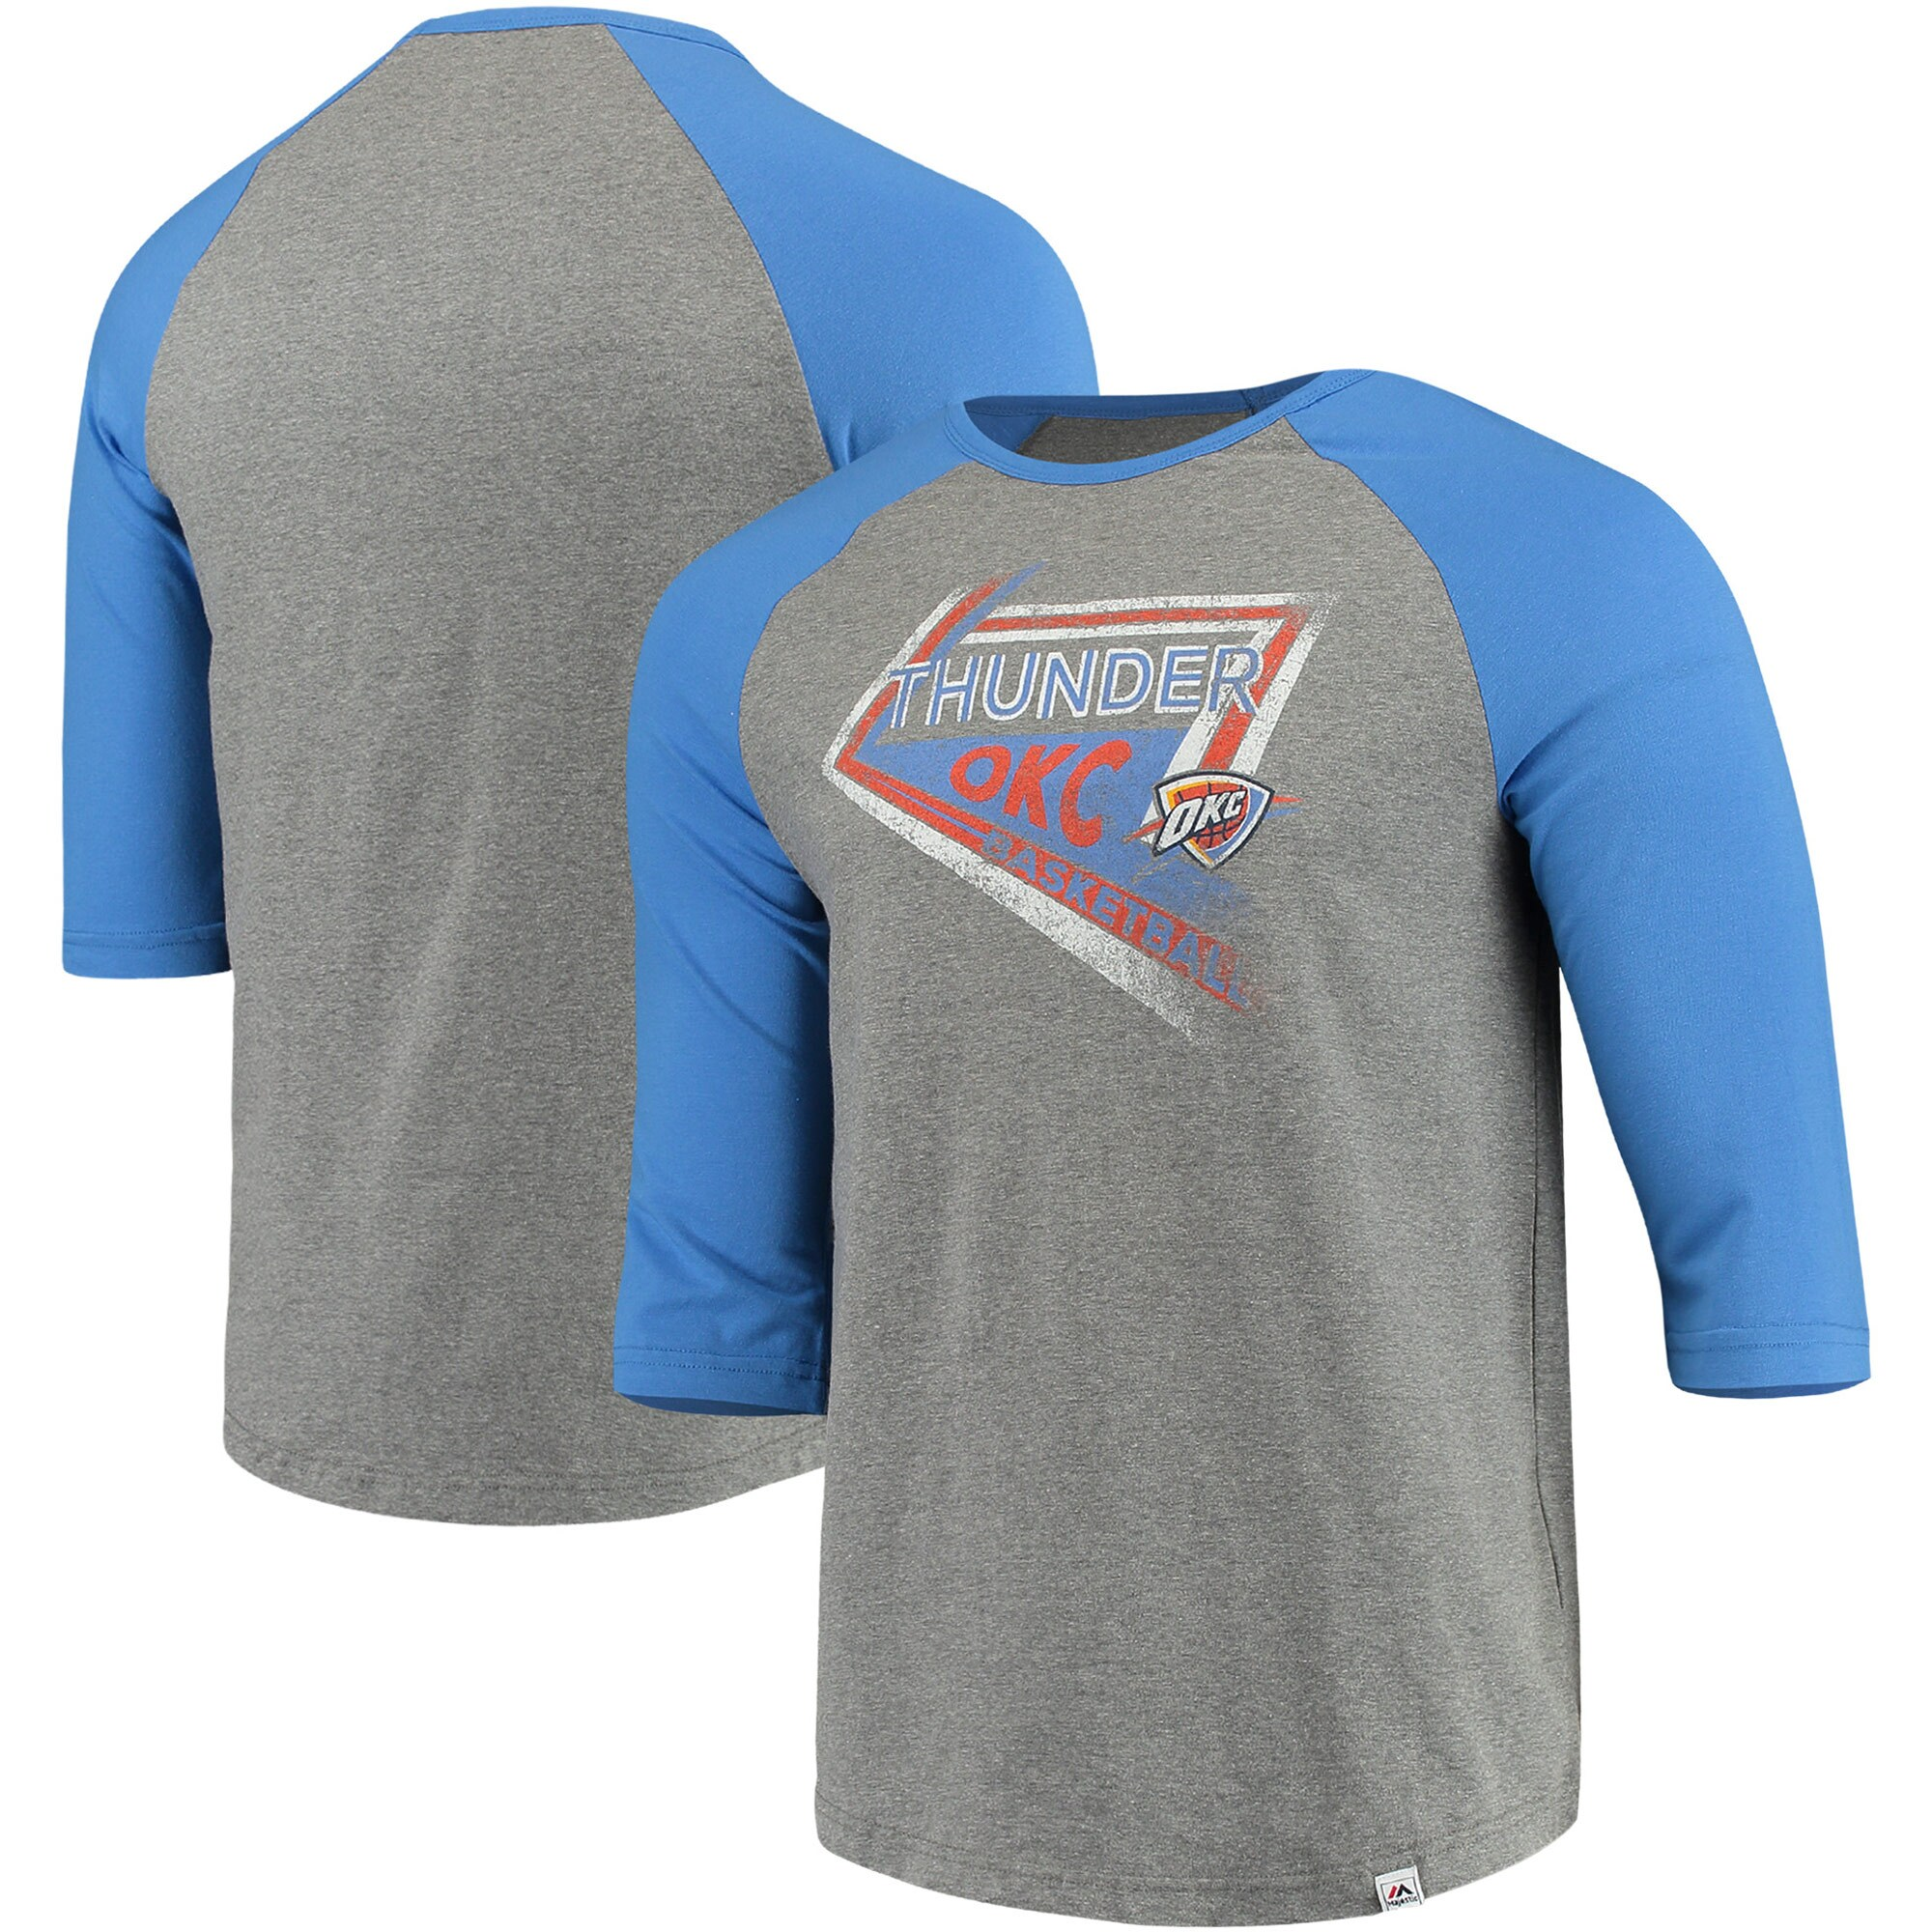 Oklahoma City Thunder Majestic Scoring Position Tri-Blend 3/4-Sleeve Raglan T-Shirt - Heathered Gray/Blue